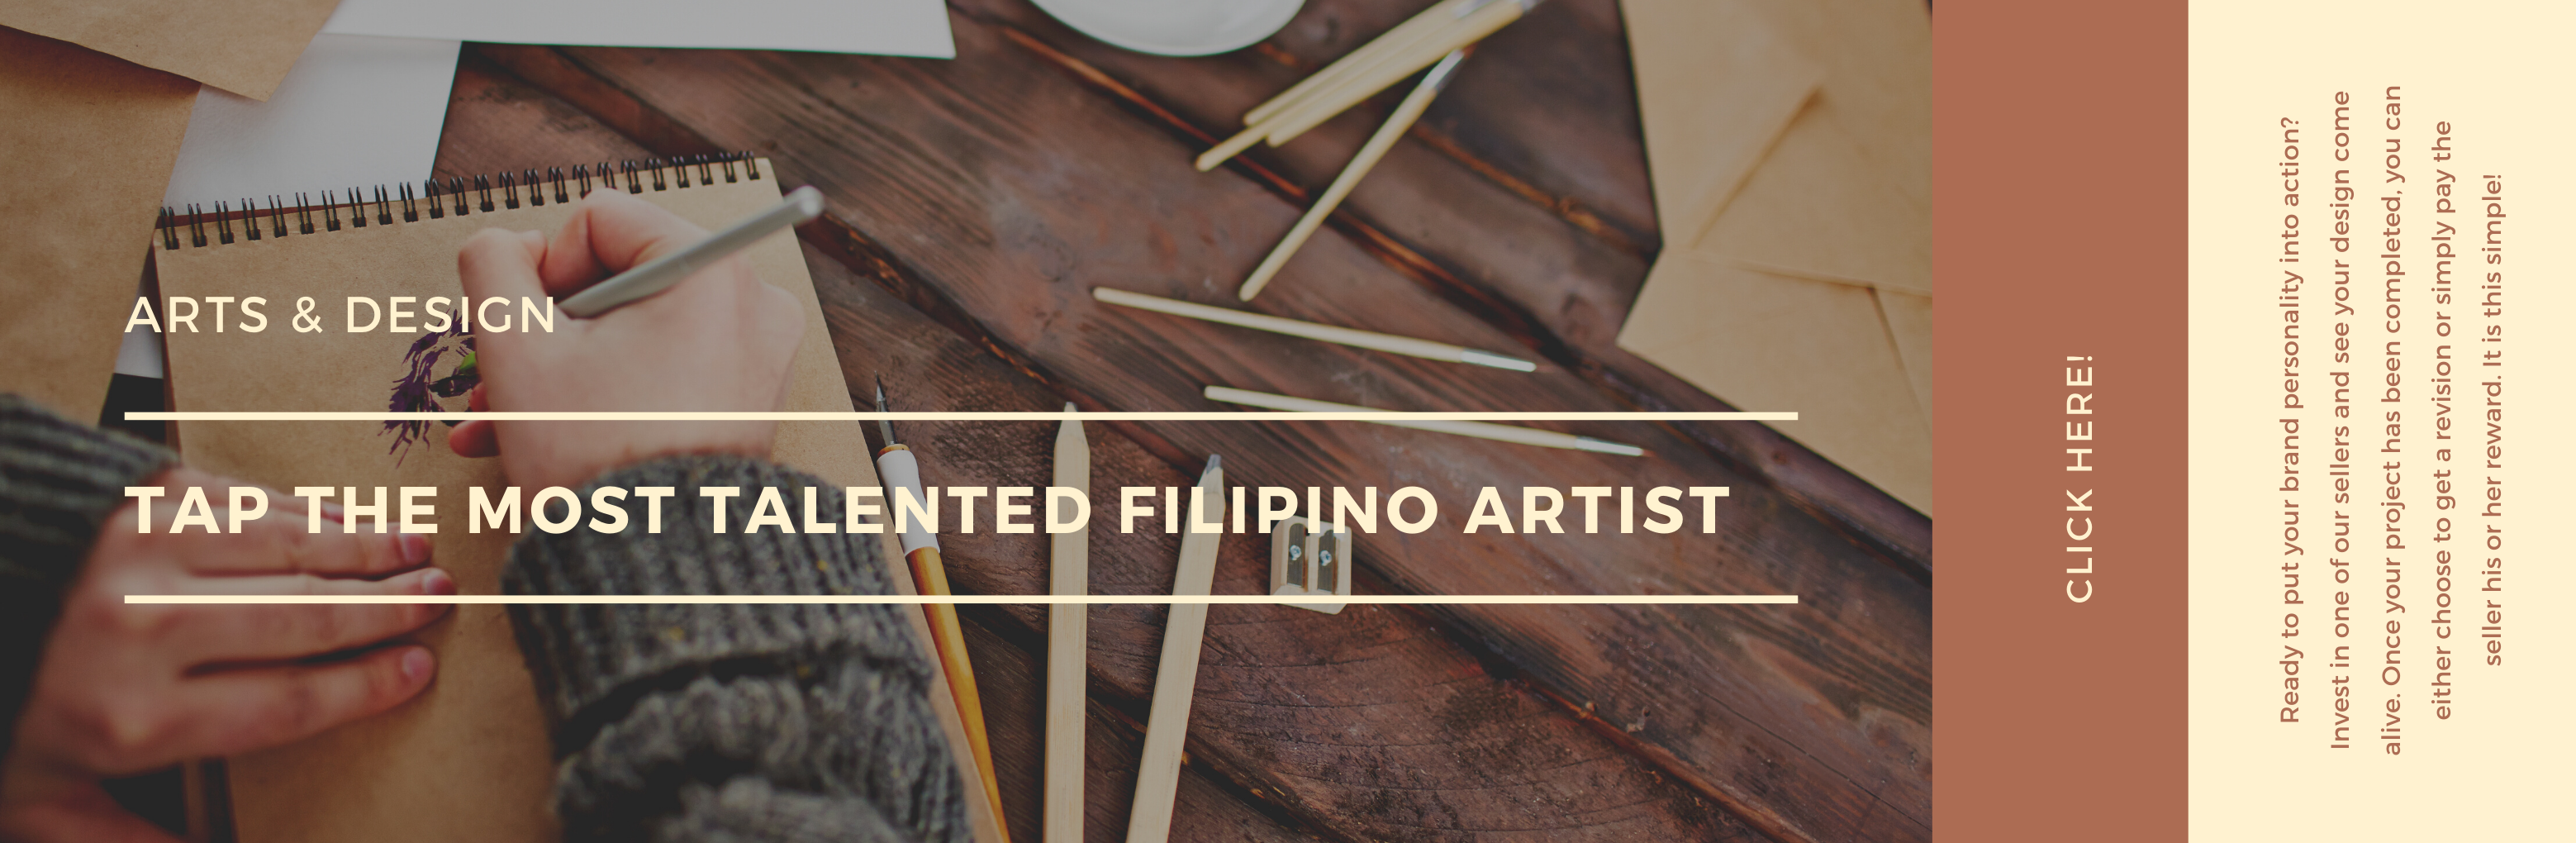 tap the most talented Filipino artist.png